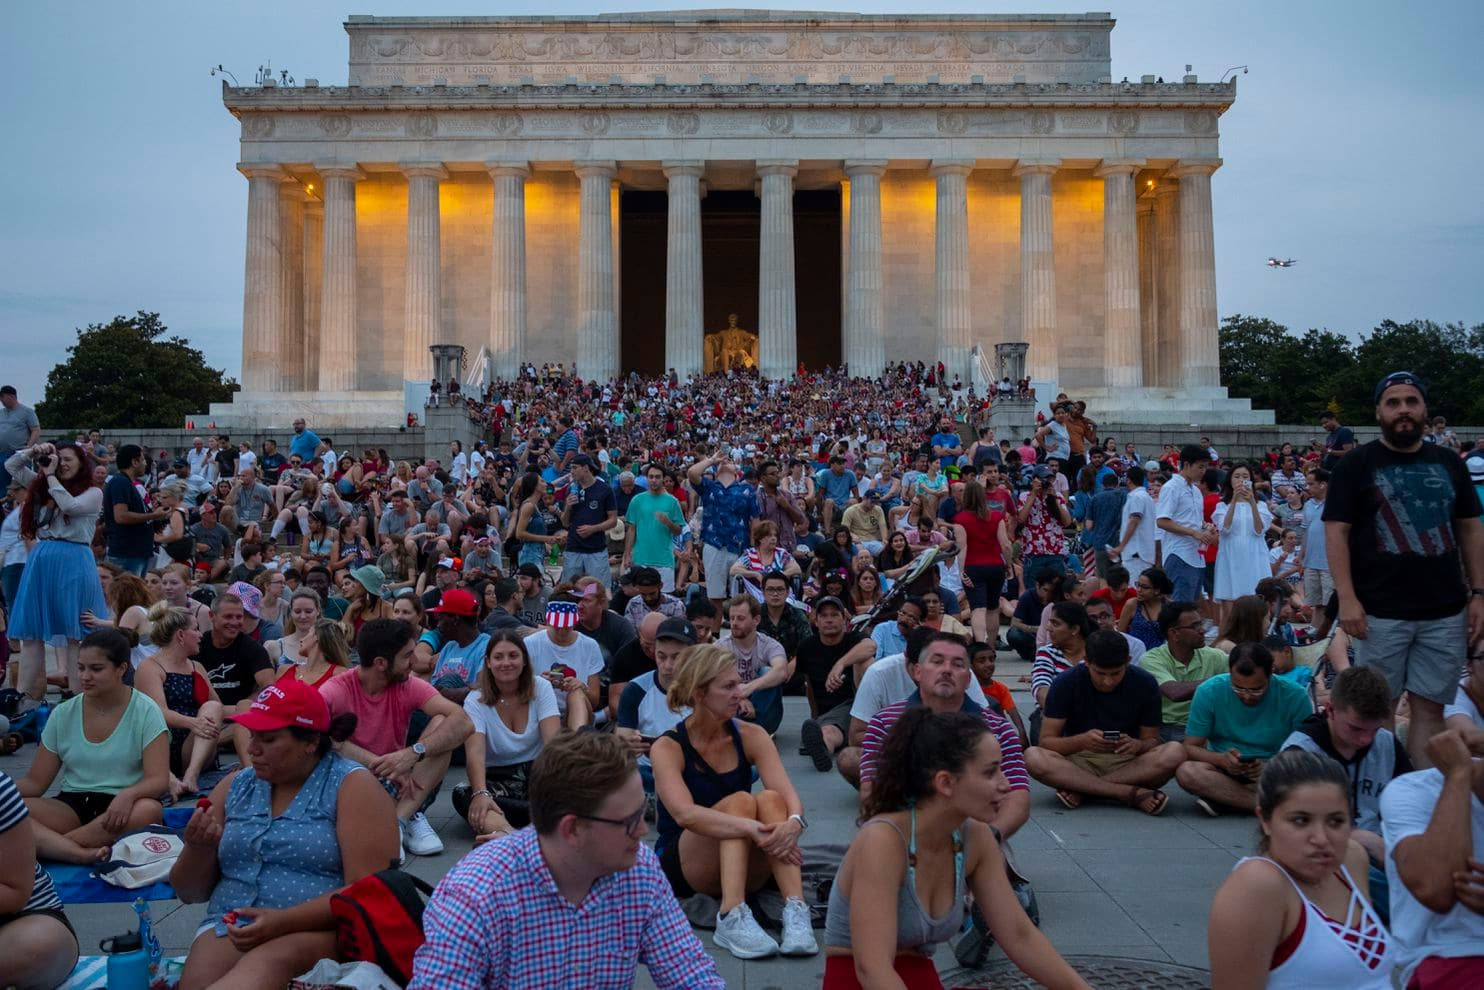 Fourth Of July Celebration In Washington: How To Celebrate, What's Different This Year, Fireworks, Parade & More!